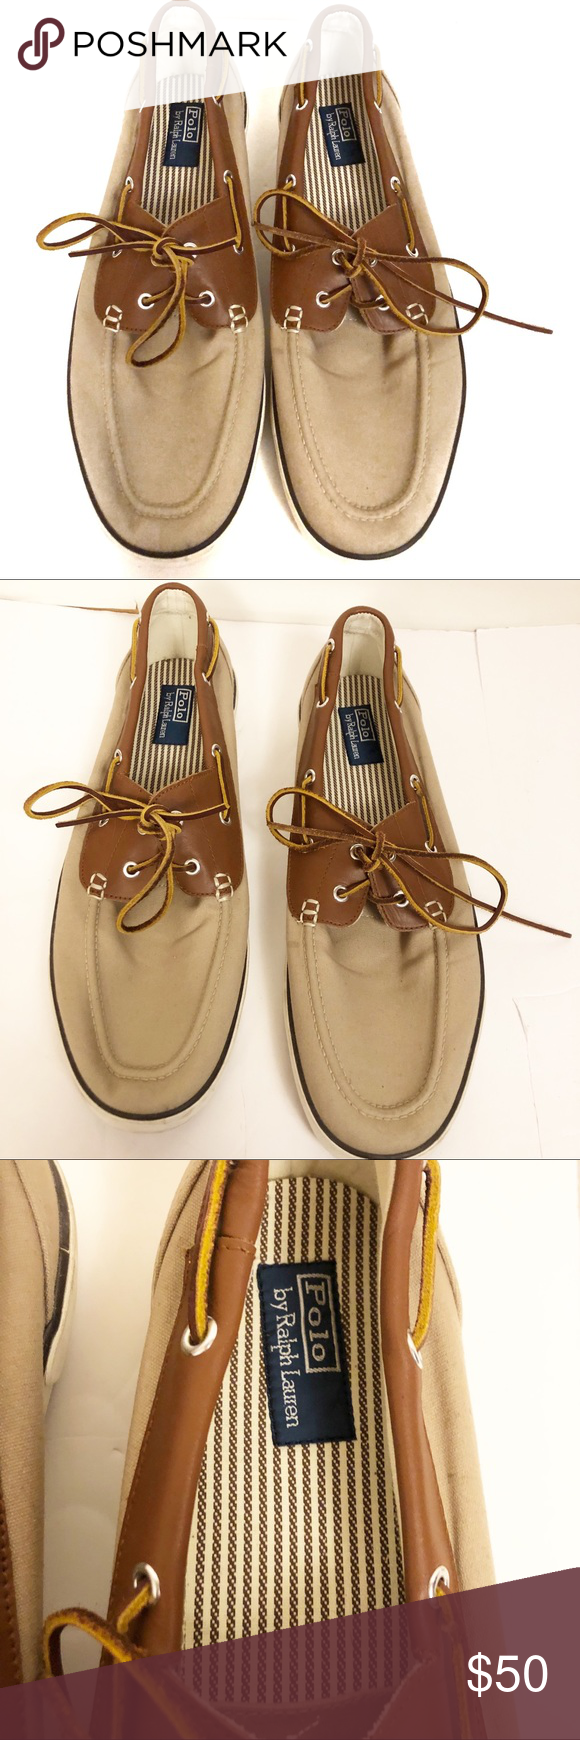 Leather boat shoes, Polo ralph lauren